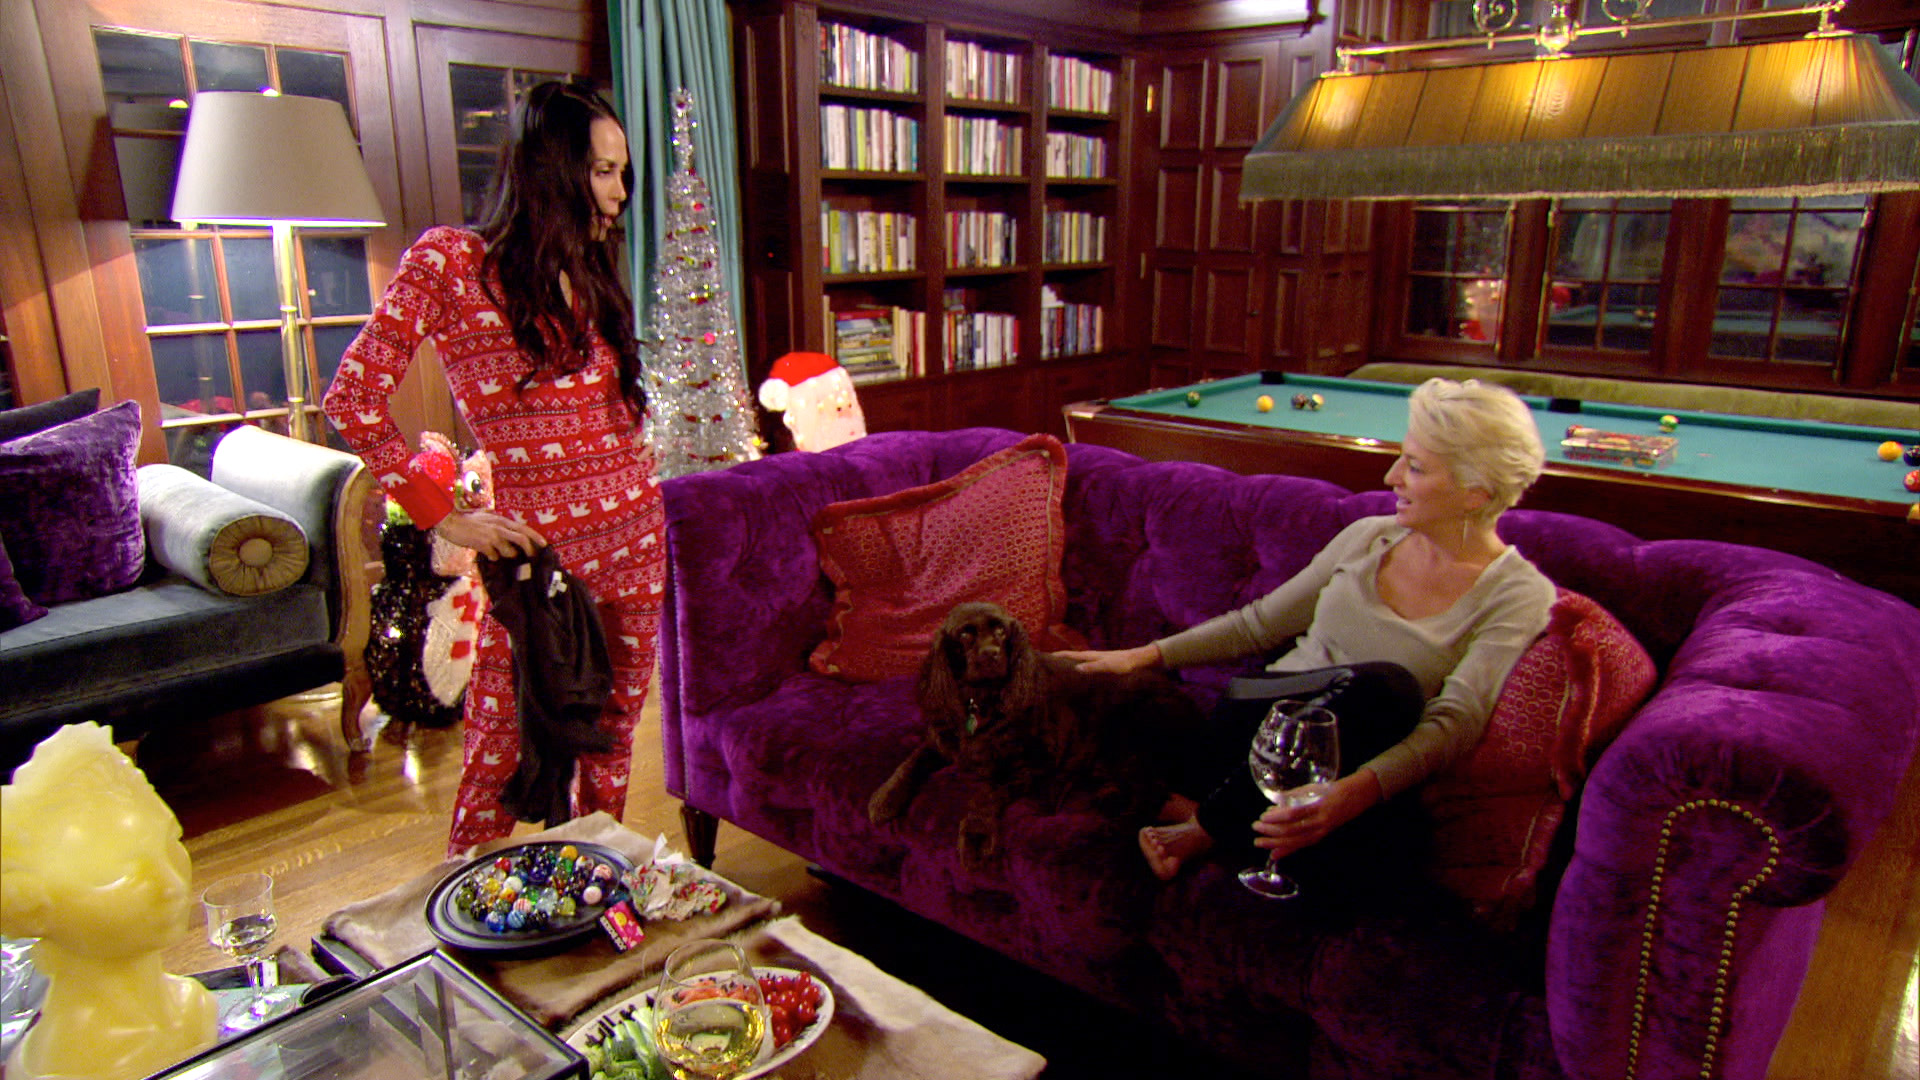 In This Unseen Moment, Jules Wainstein And Dorinda Medley Lean On Each  Other While Everyone Else Continues To Argue.